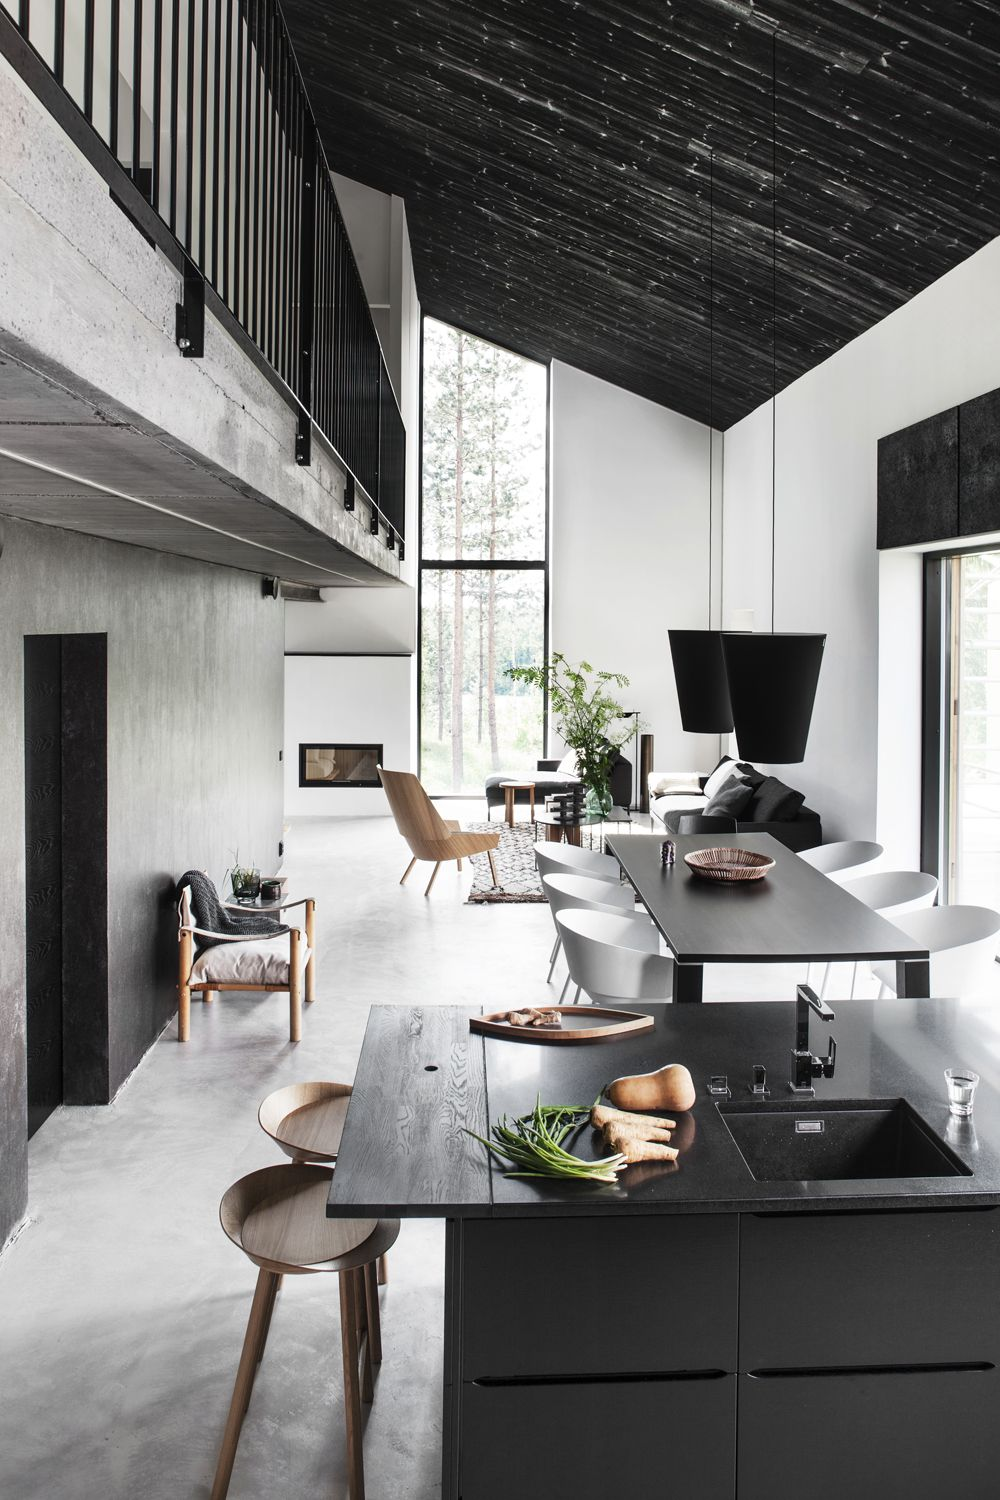 Best These Black And White Rooms Will Never Go Out Of Style Modern Interior Design Home Decor 400 x 300